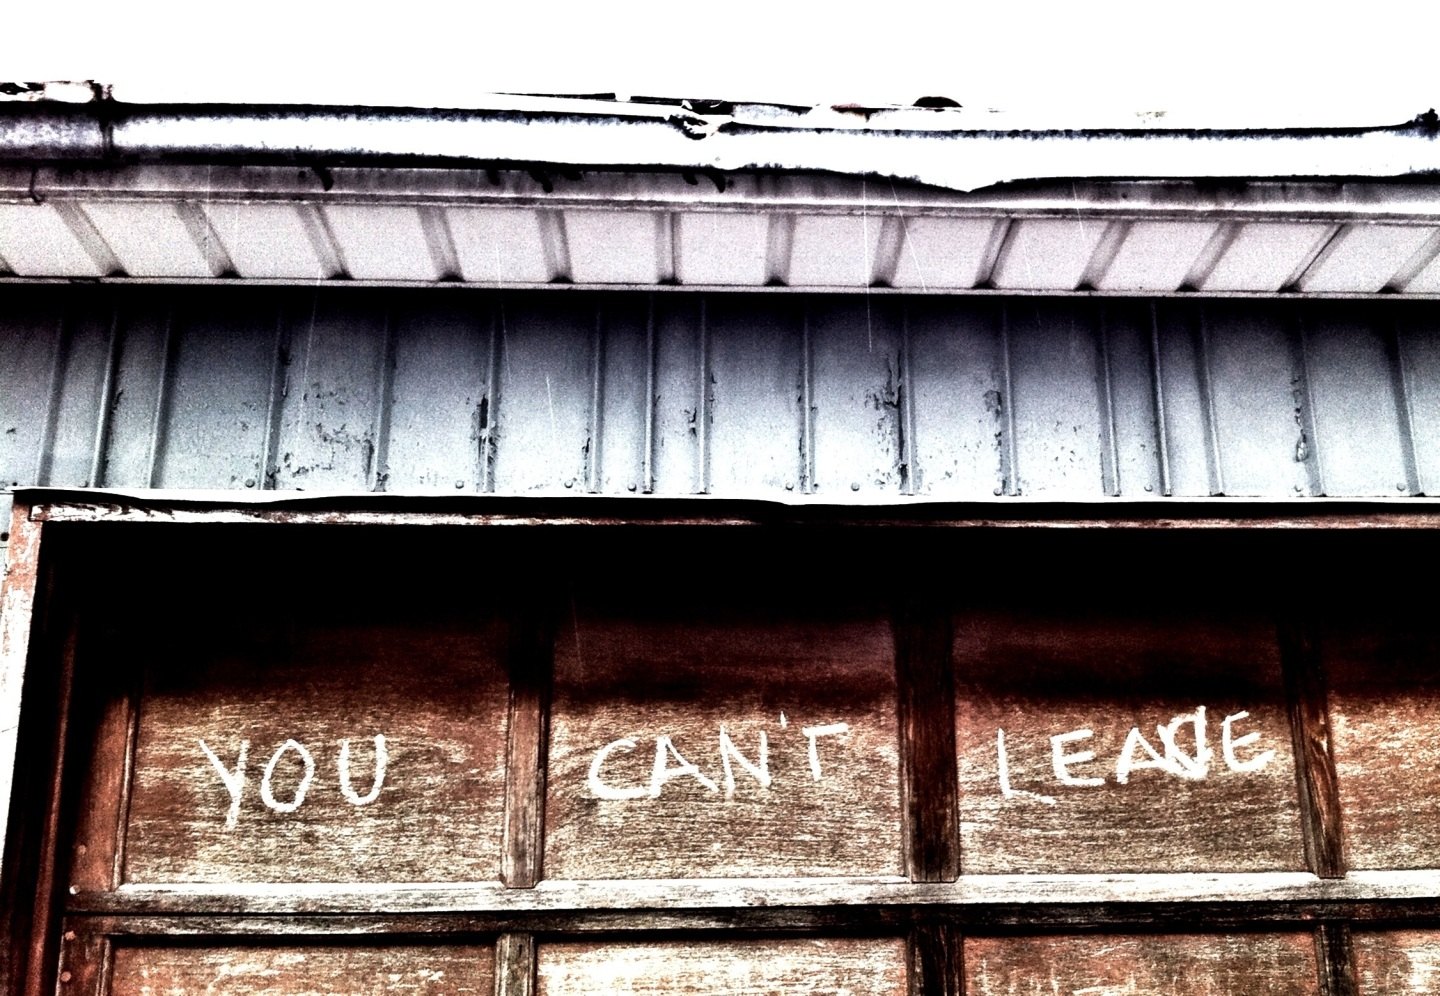 Letters from thealleyway